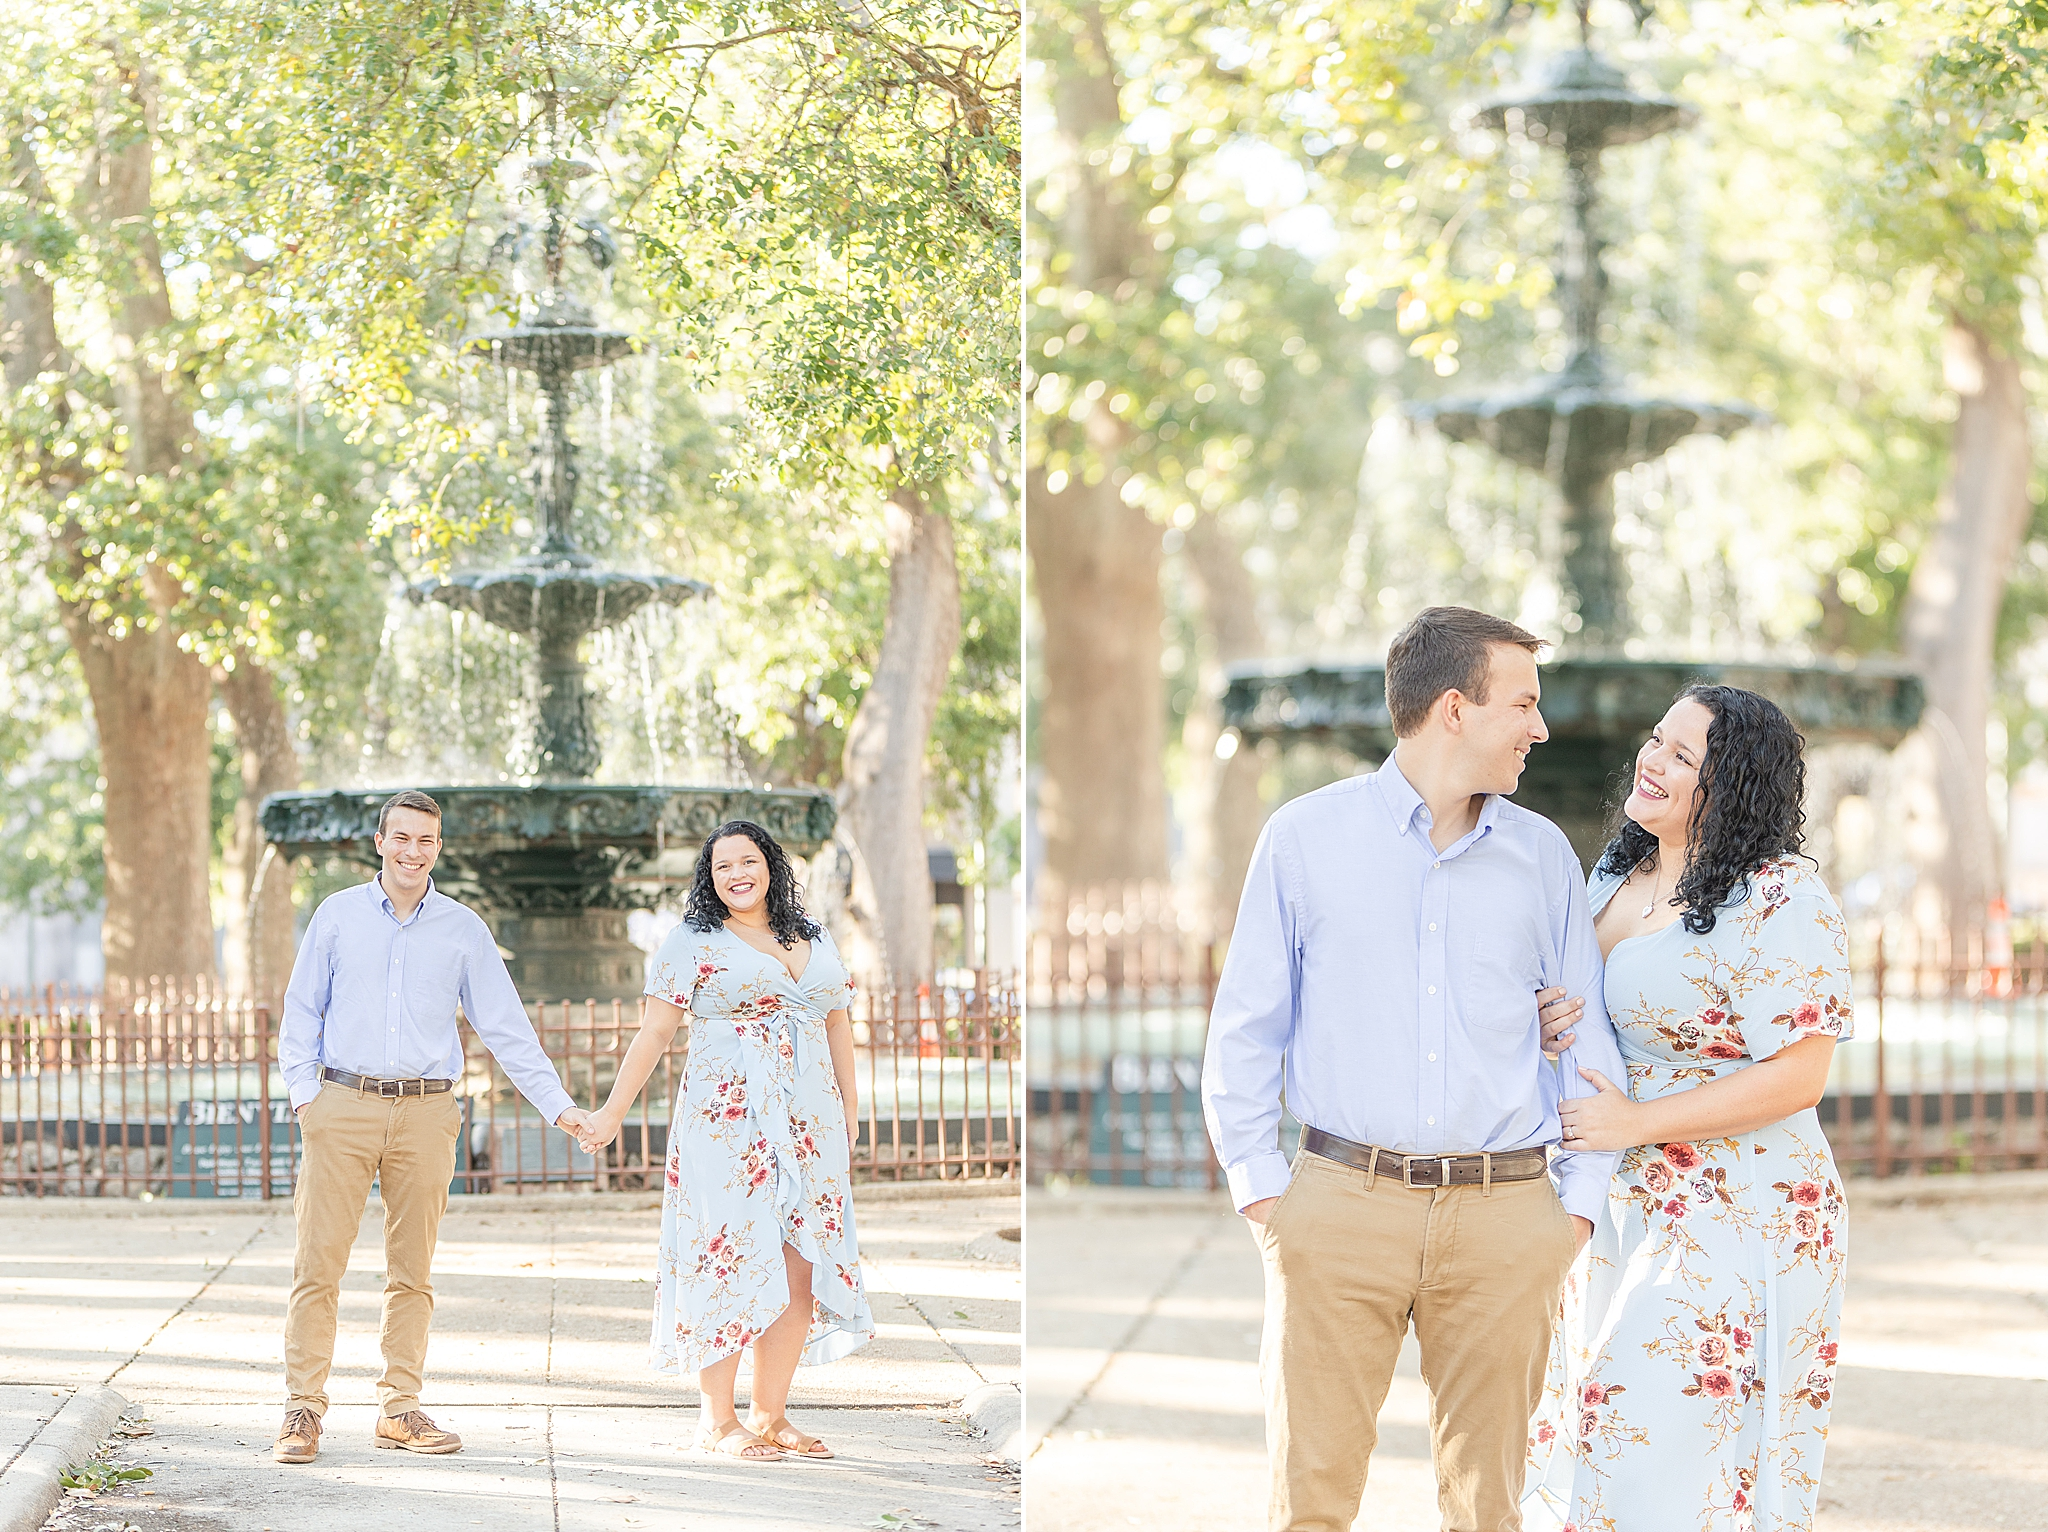 Bienville Square engagement session with Fairhope wedding photographers Goodie and Smith Weddings